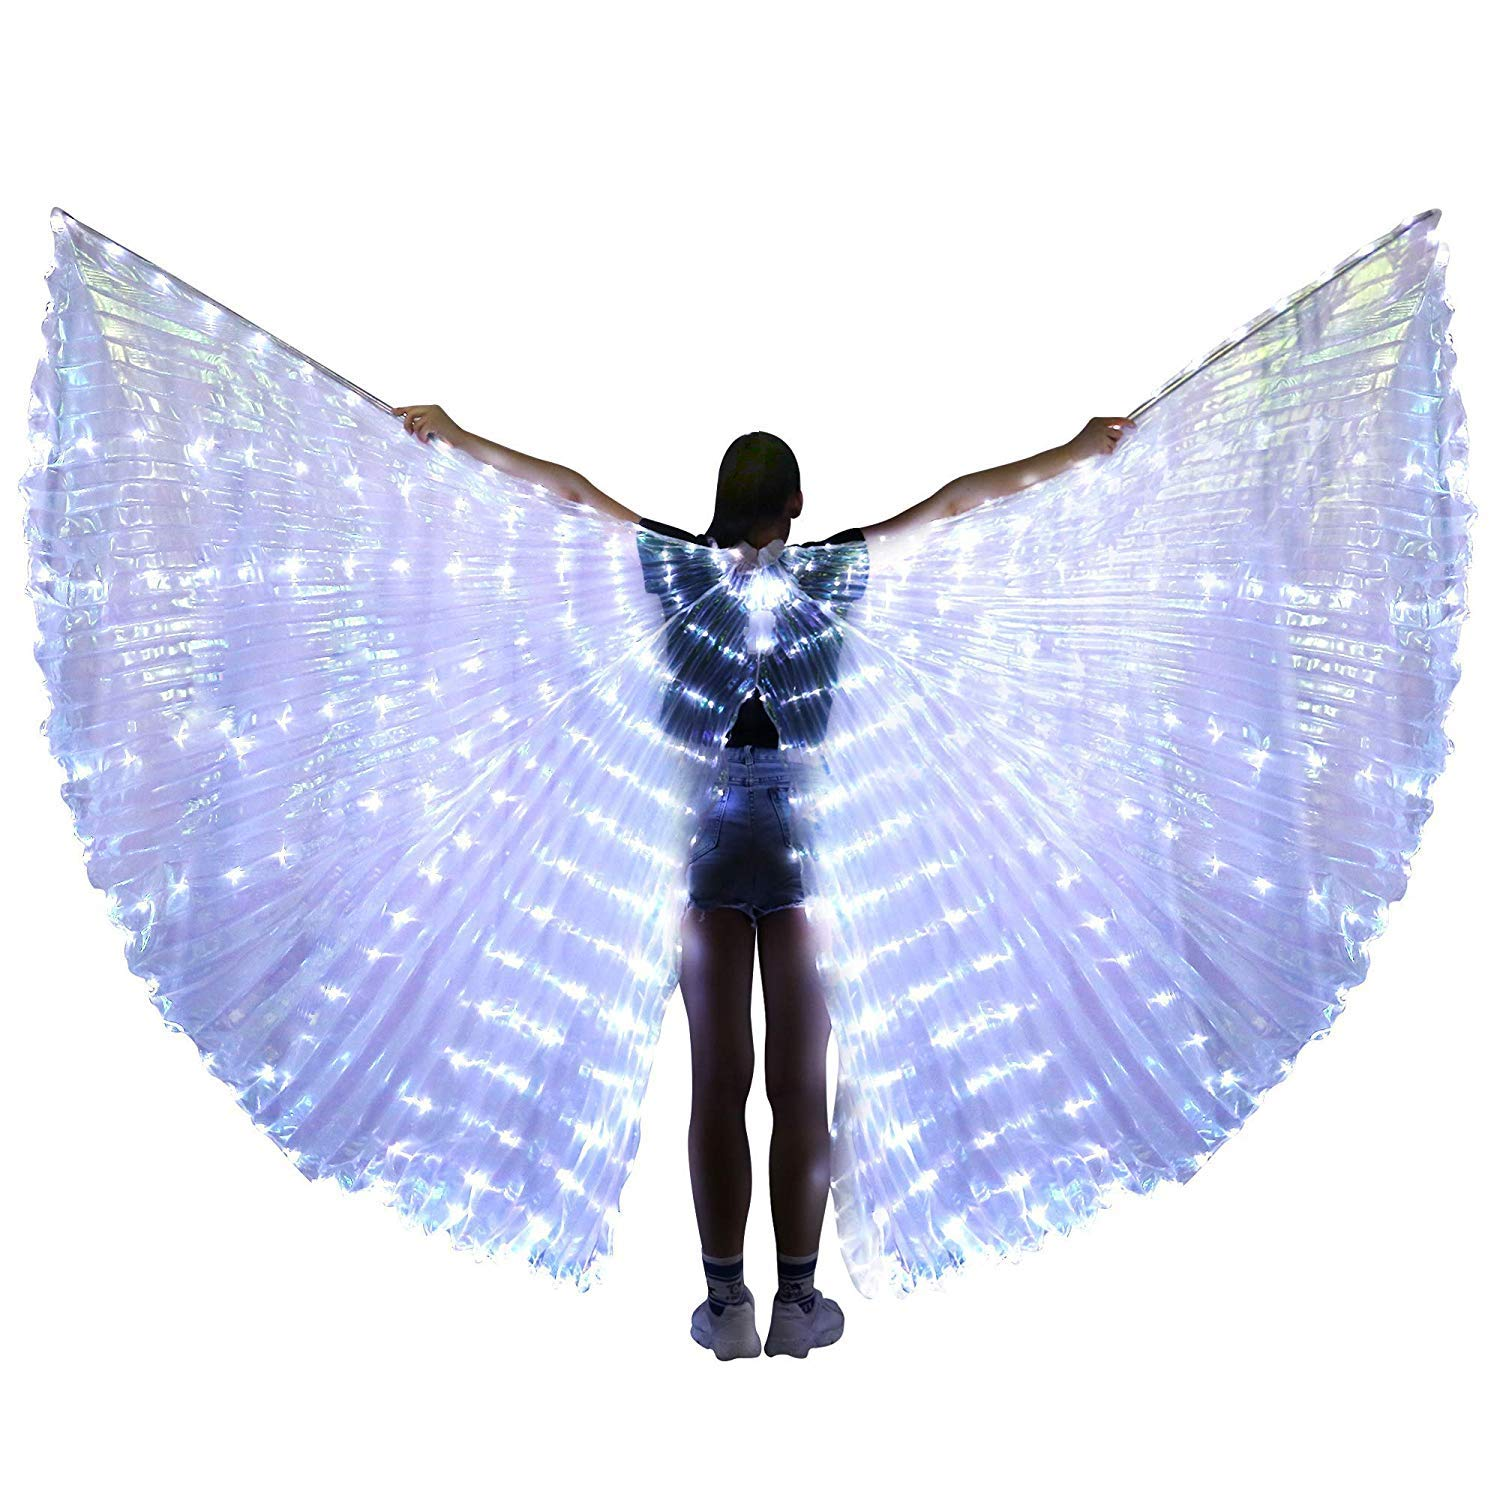 xiaoxiaoland εїз Belly Dance Wing with Rods-360 Degree Angel Wings with Portable Telescopic Sticks for Adults and Child,Whiteopeningwing-382 by xiaoxiaoland